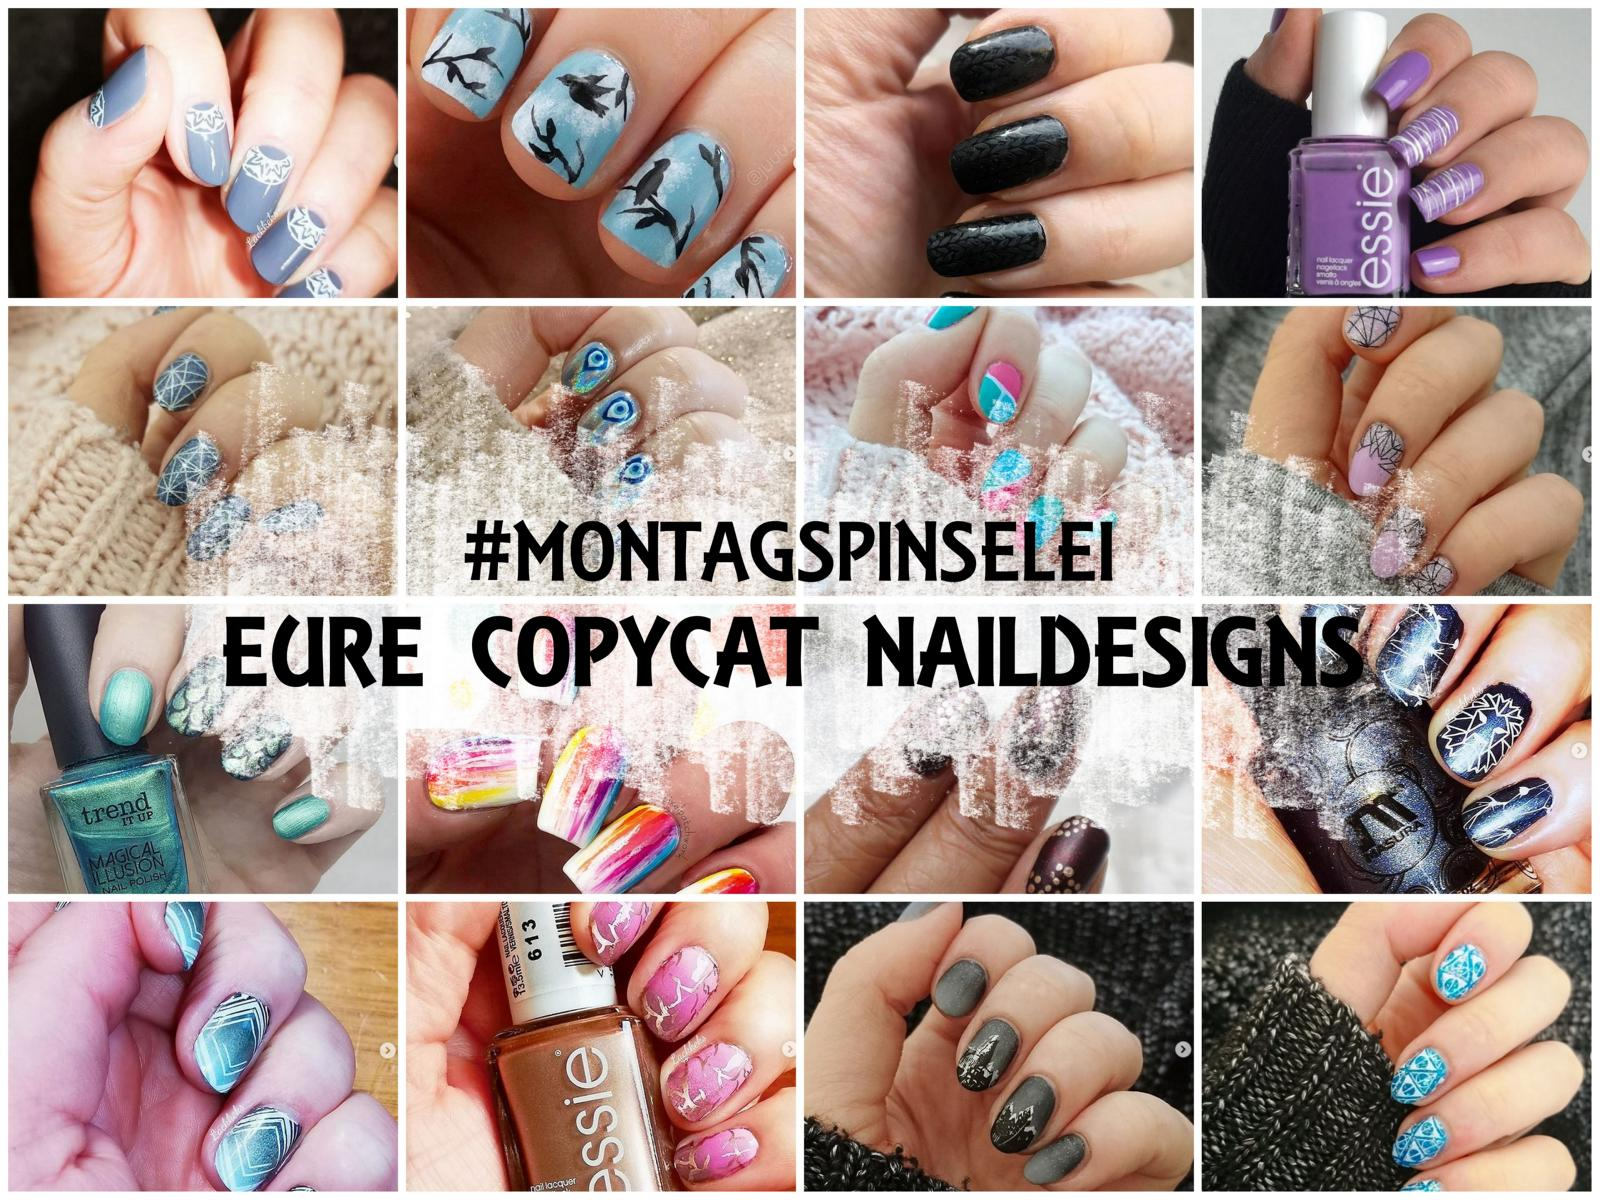 Copycat Naildesigns